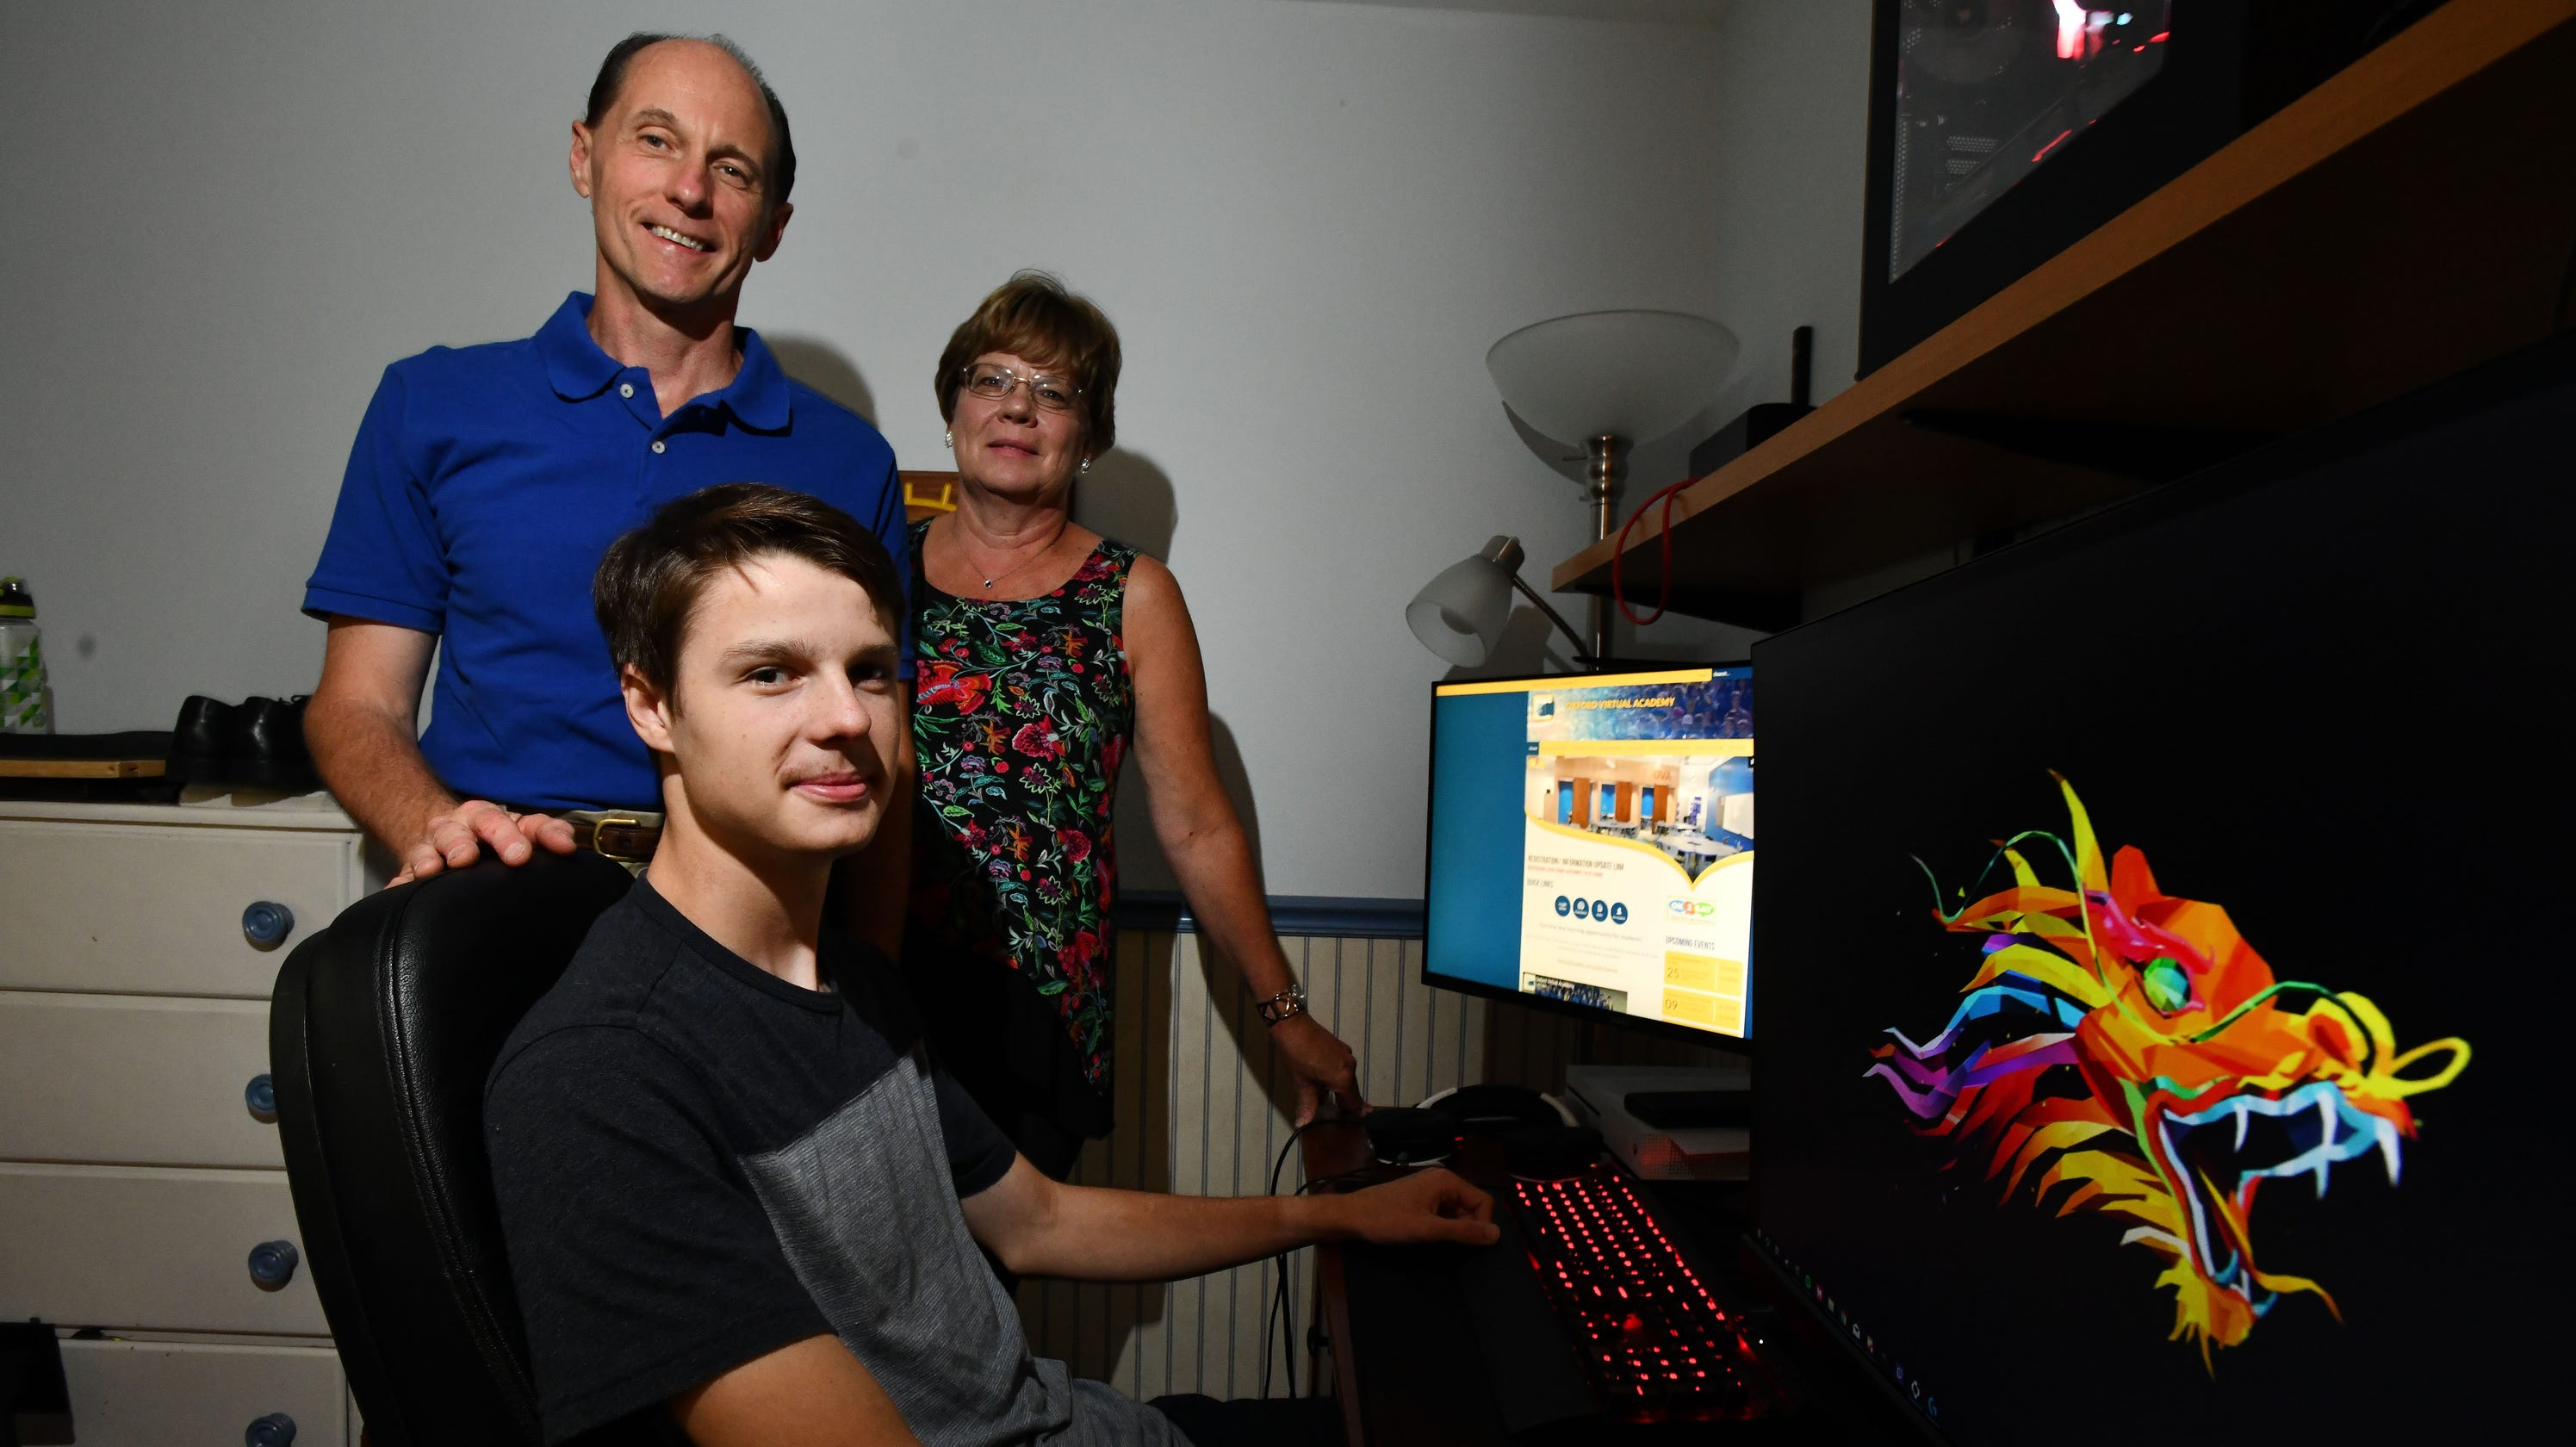 Student hacker shows holes in K-12 cybersecurity